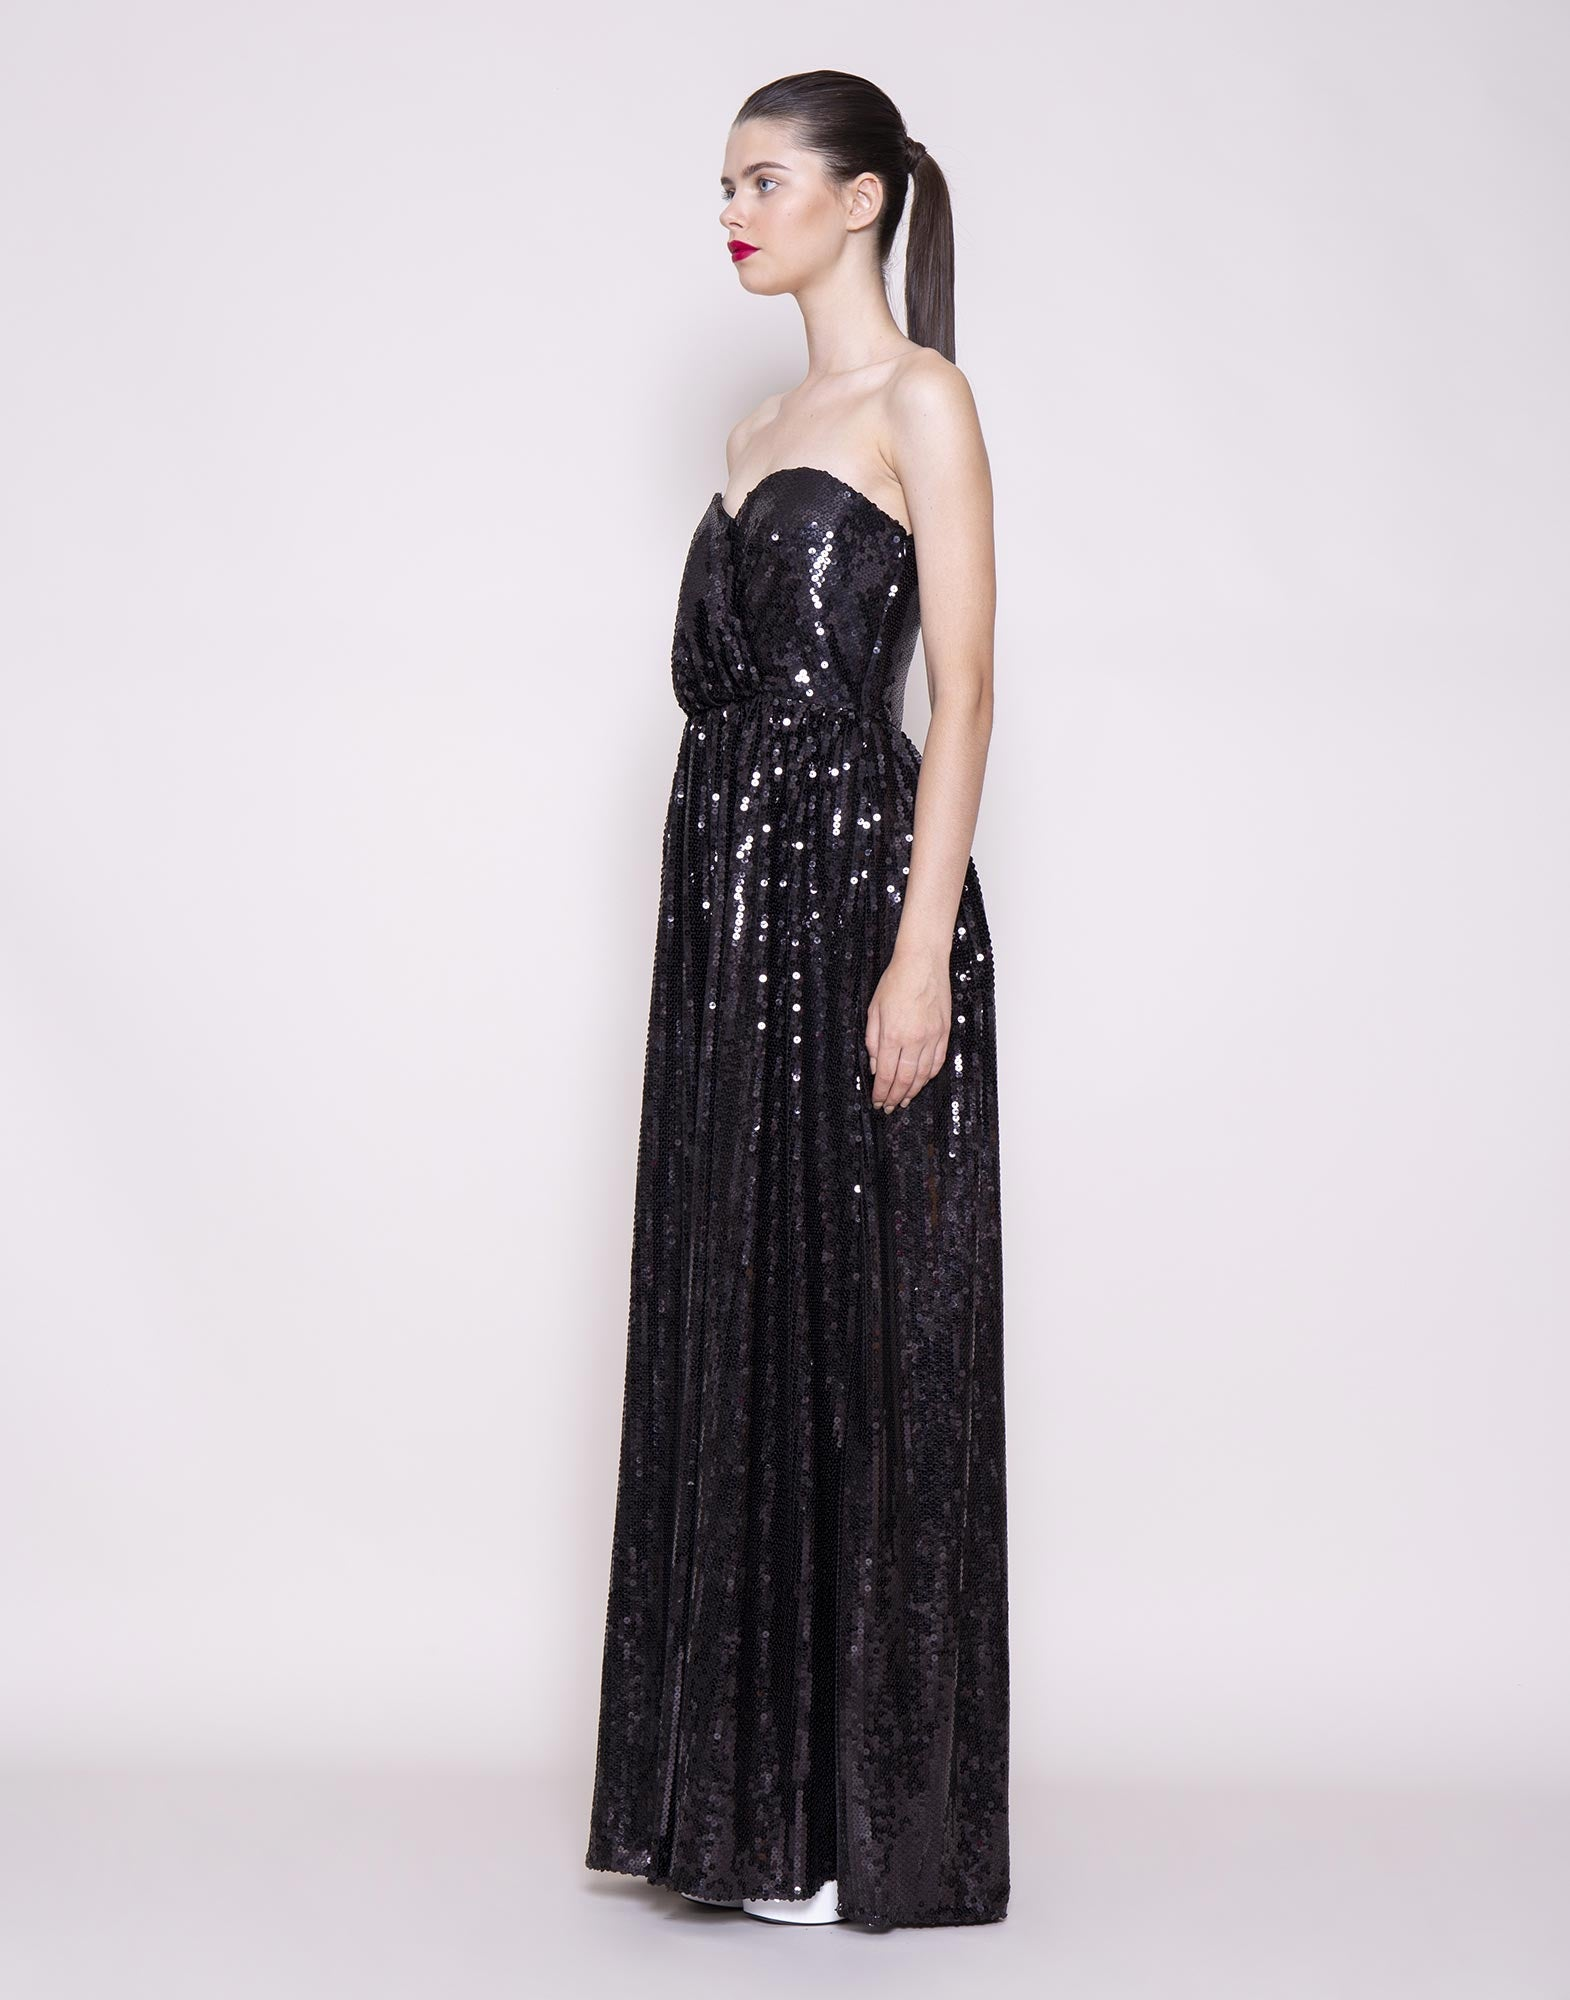 Black sequins gown